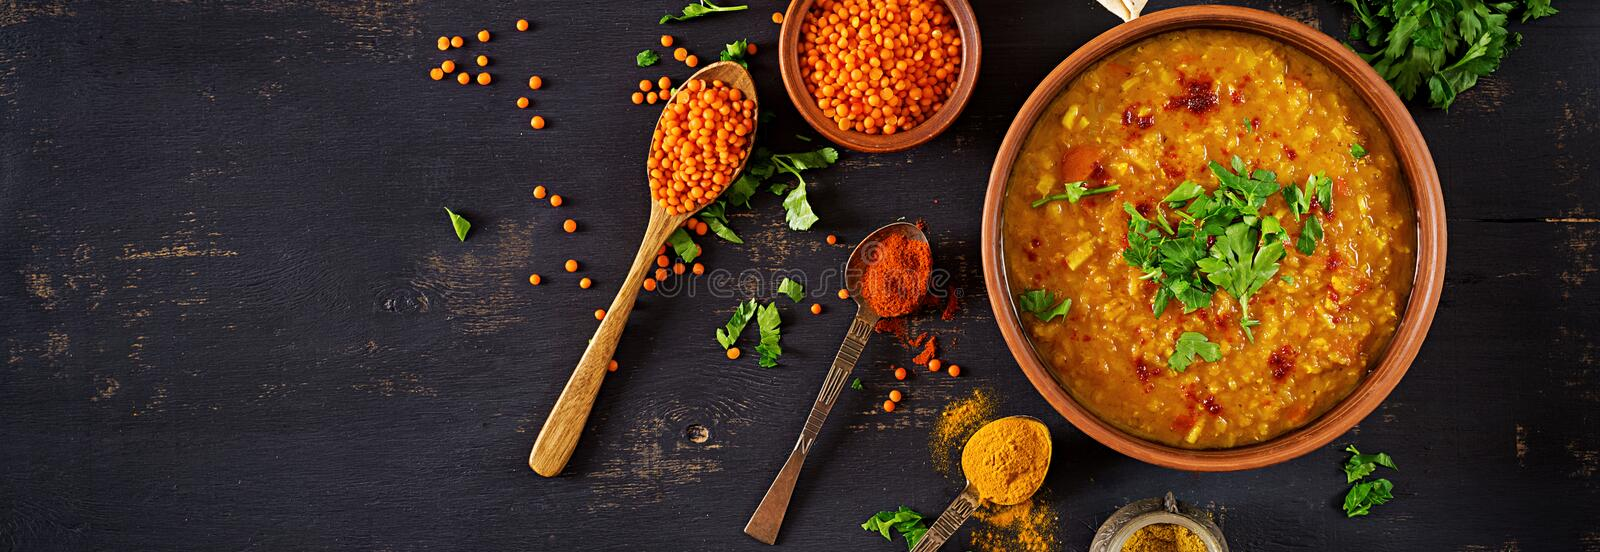 Katsu Sando - food trend japanese sandwich with breaded pork chop, cabbageIndian dal. Food. Traditional Indian soup lentils. royalty free stock photos